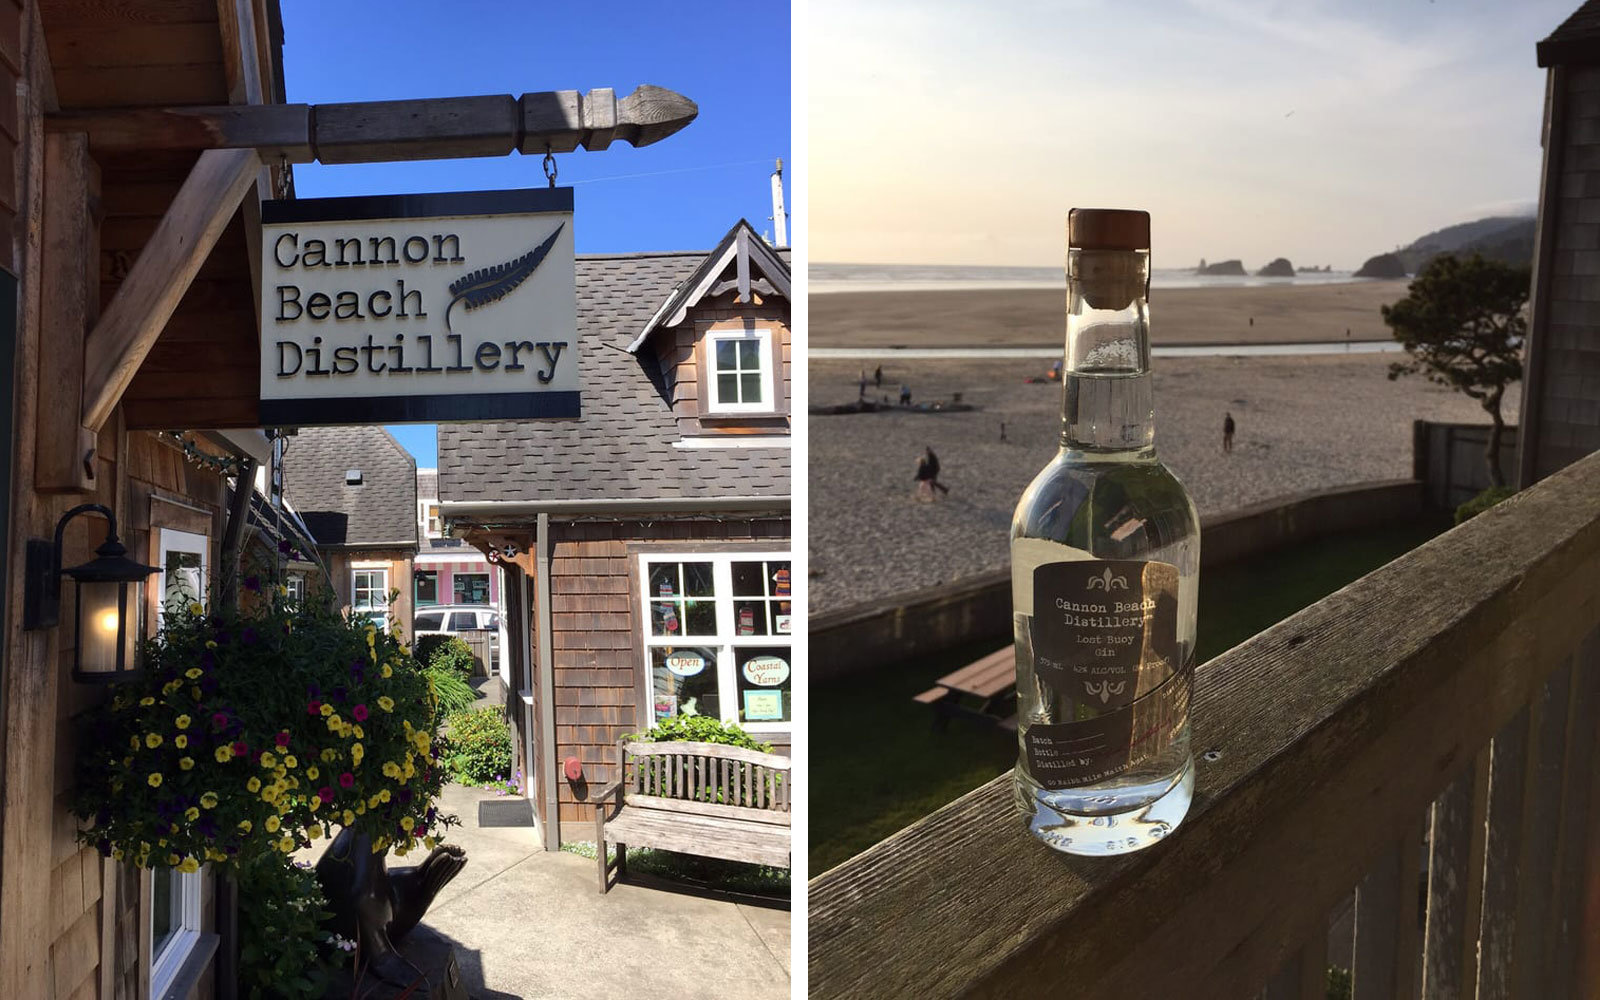 19. Cannon Beach Distillery